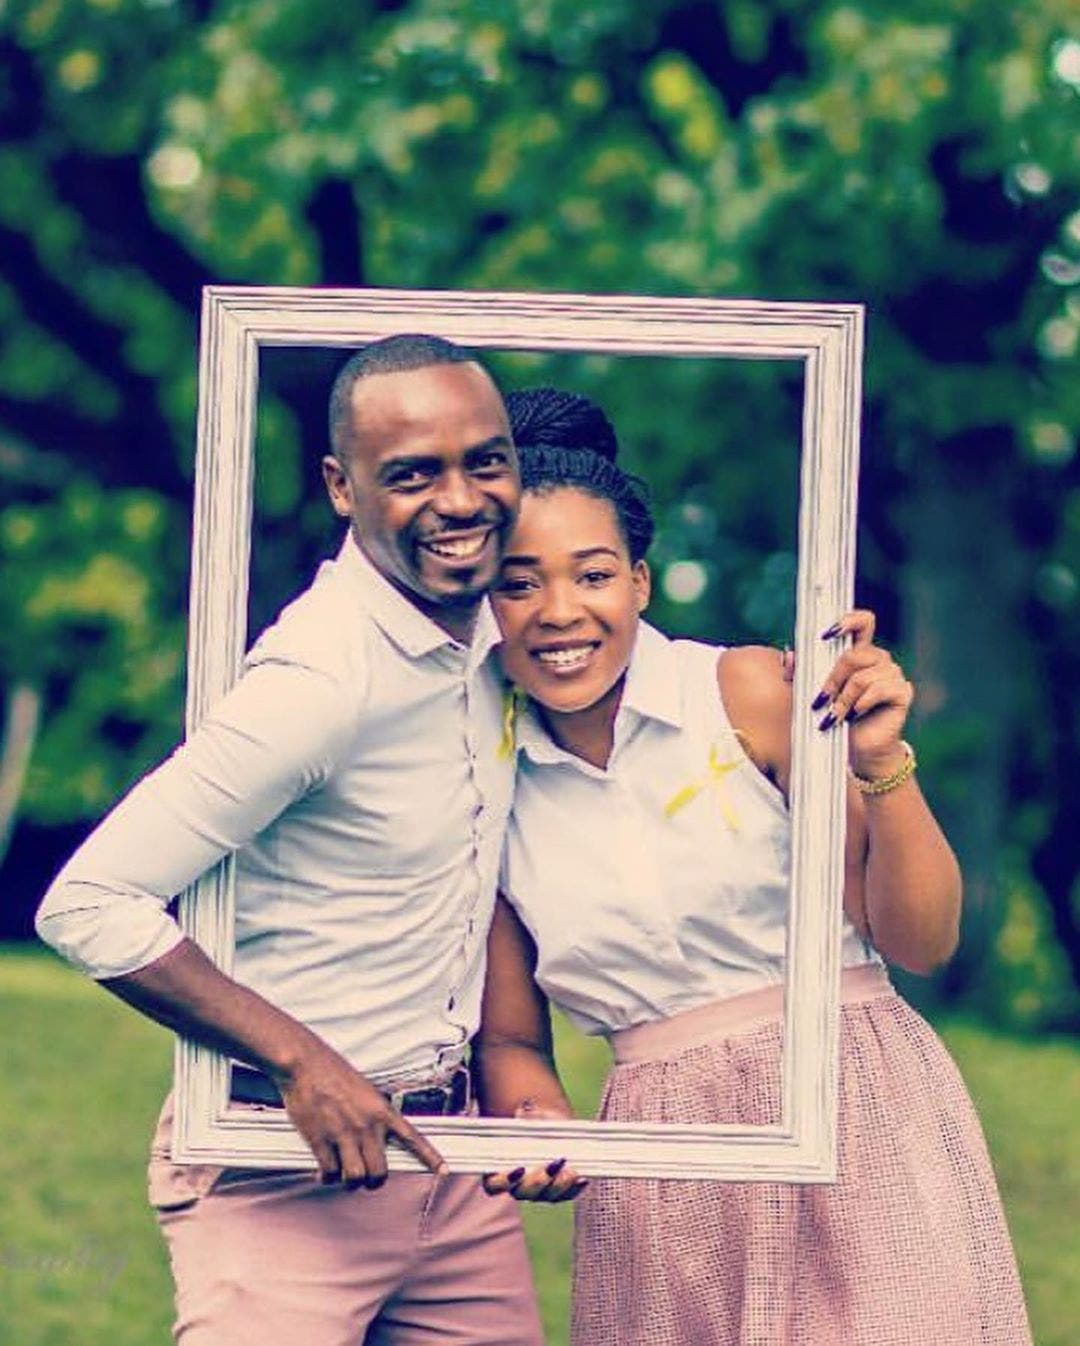 Themba and wife